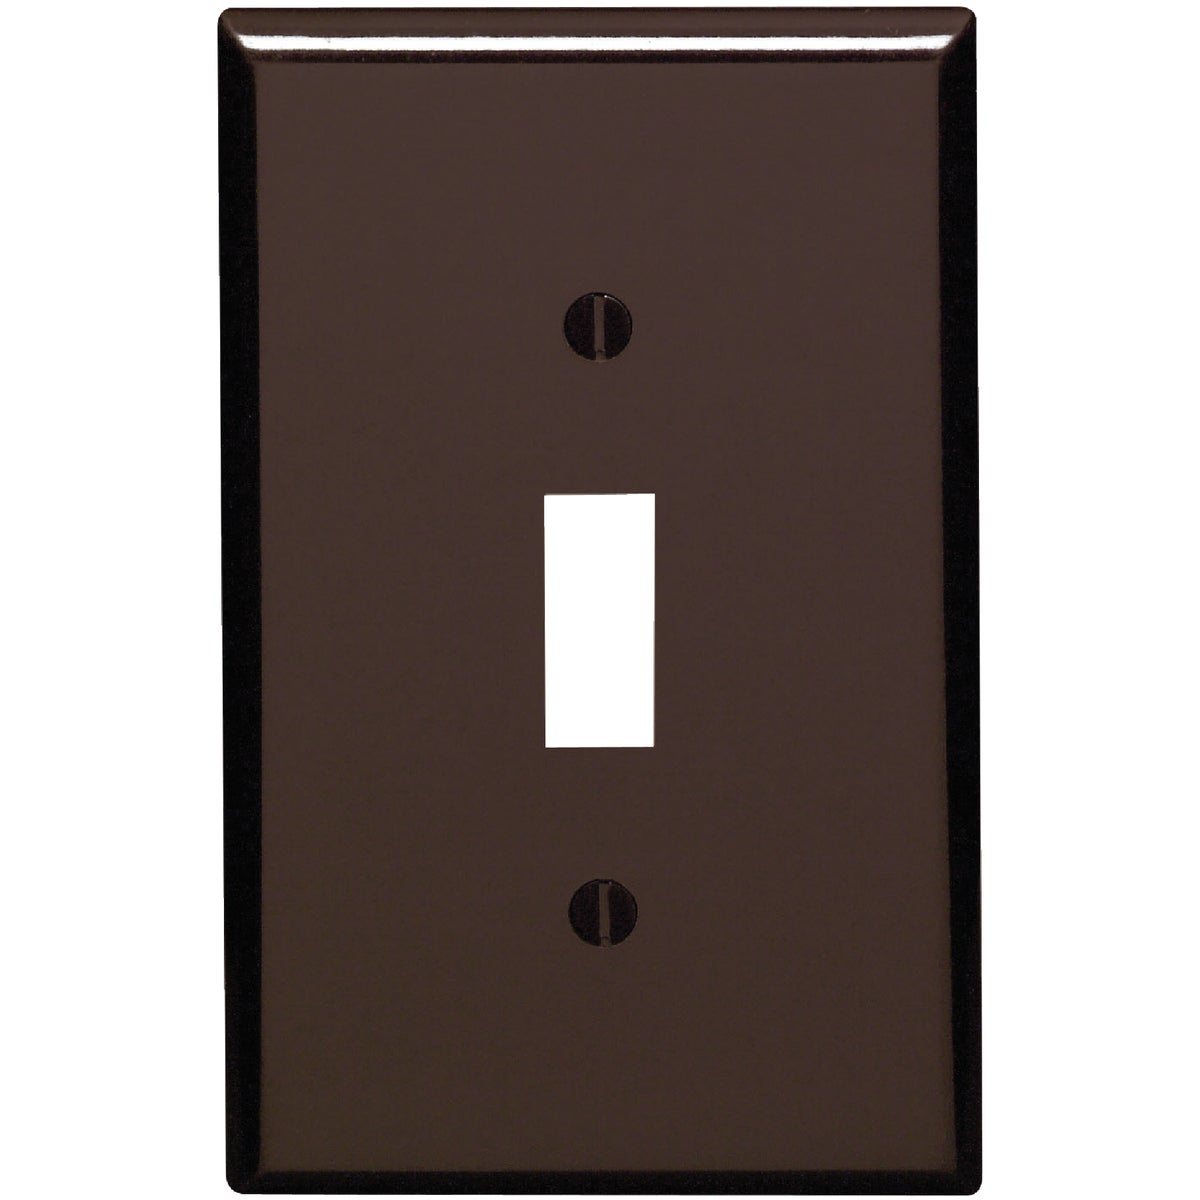 BRN 1-TOGGLE WALL PLATE - 80501 by Leviton Mfg Co